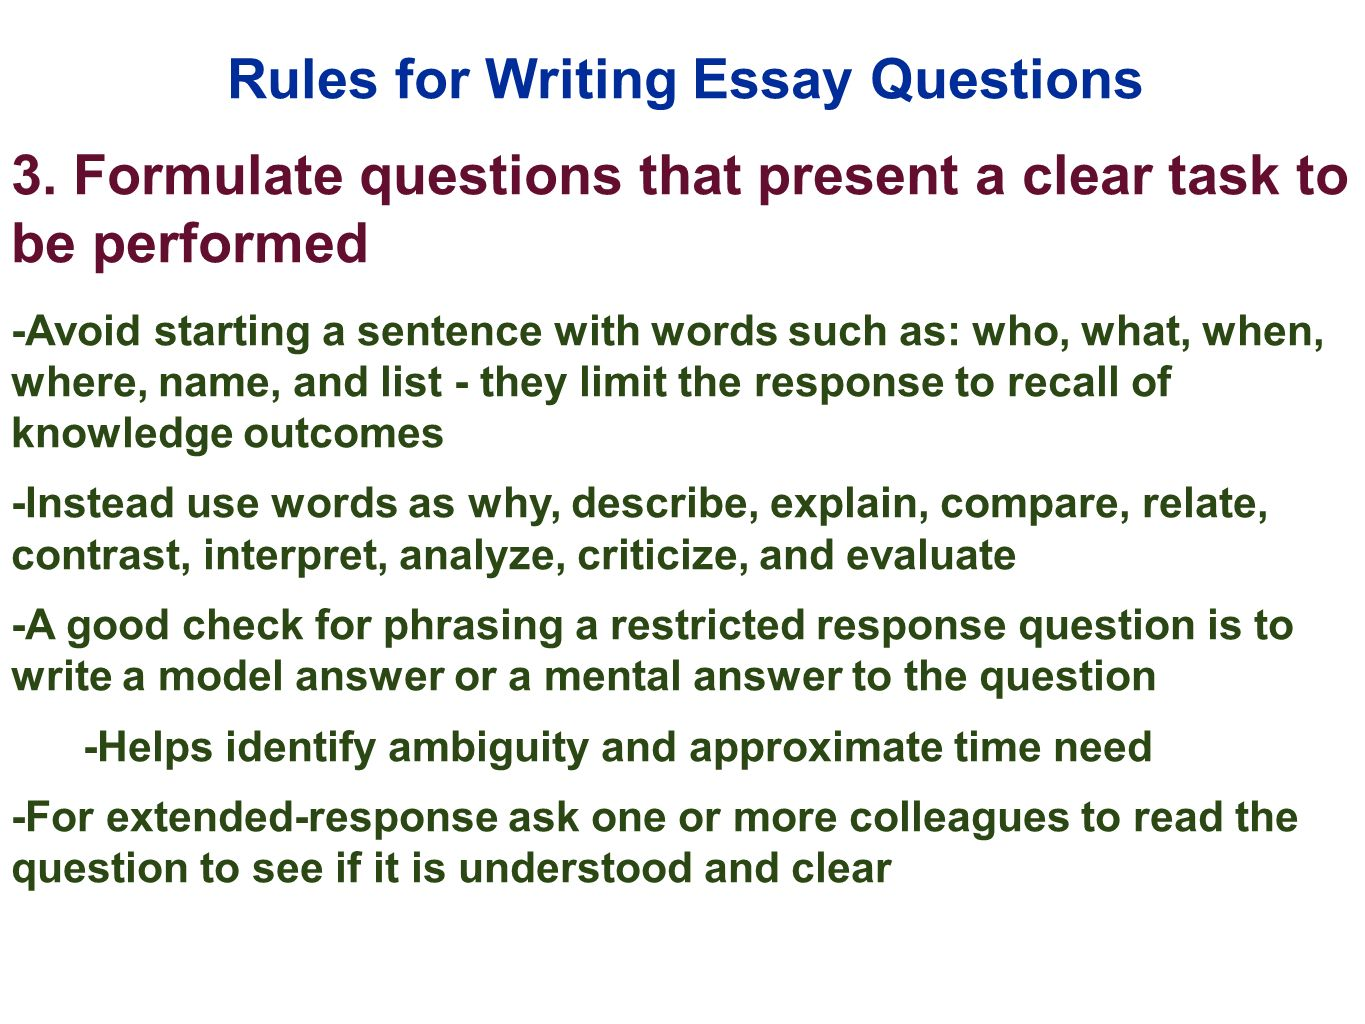 10 rules for writing an essay